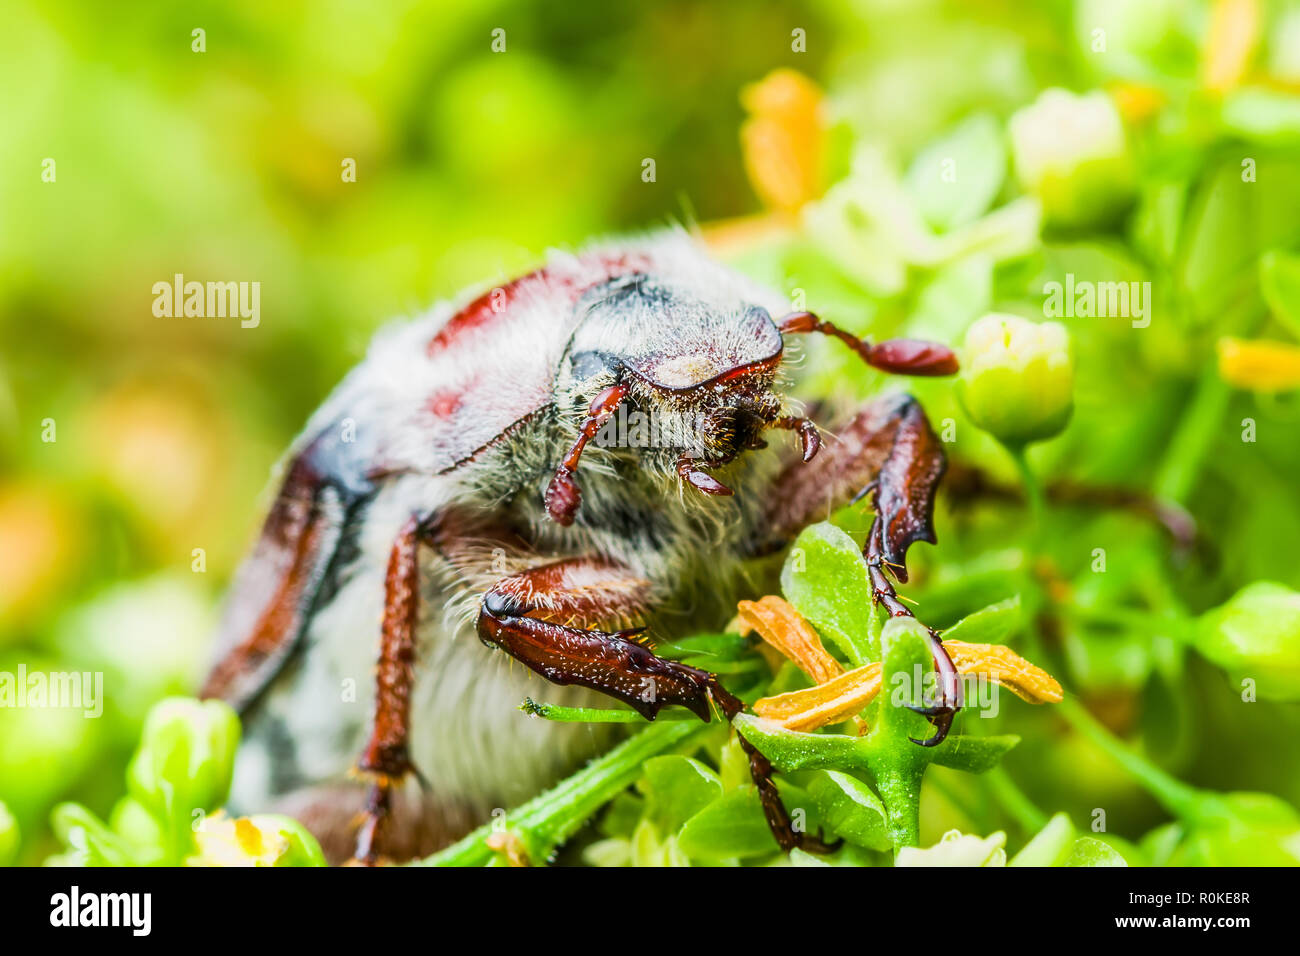 Cockchafer Melolontha May Beetle Bug Insect Macro - Stock Image